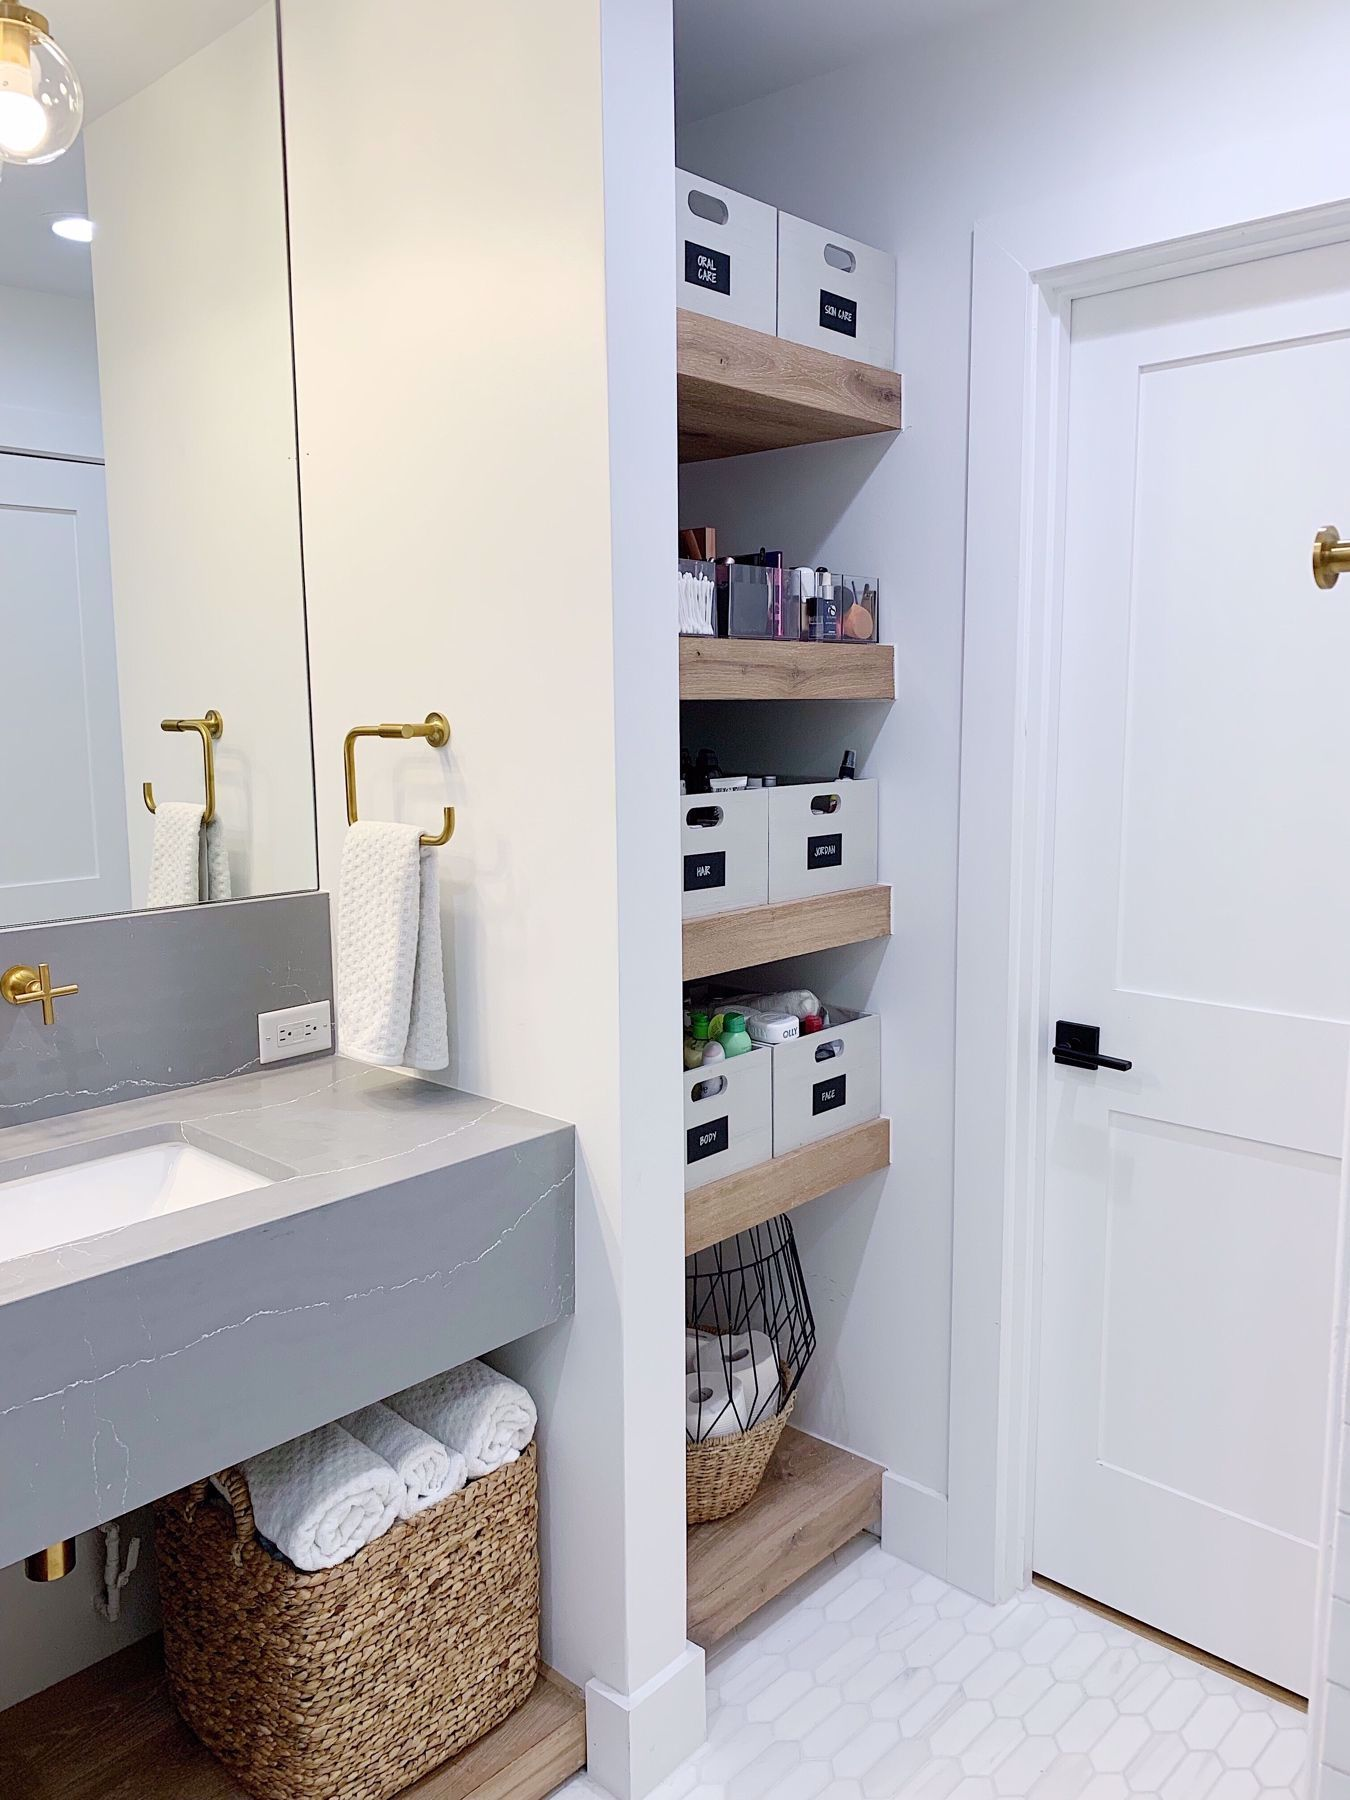 Neat Method Bathrooms Modern Bathrooms White Bathrooms Bathroom Organization Bathroom In 2020 Open Concept Bathroom Small Bathroom Storage Bathroom Makeup Storage